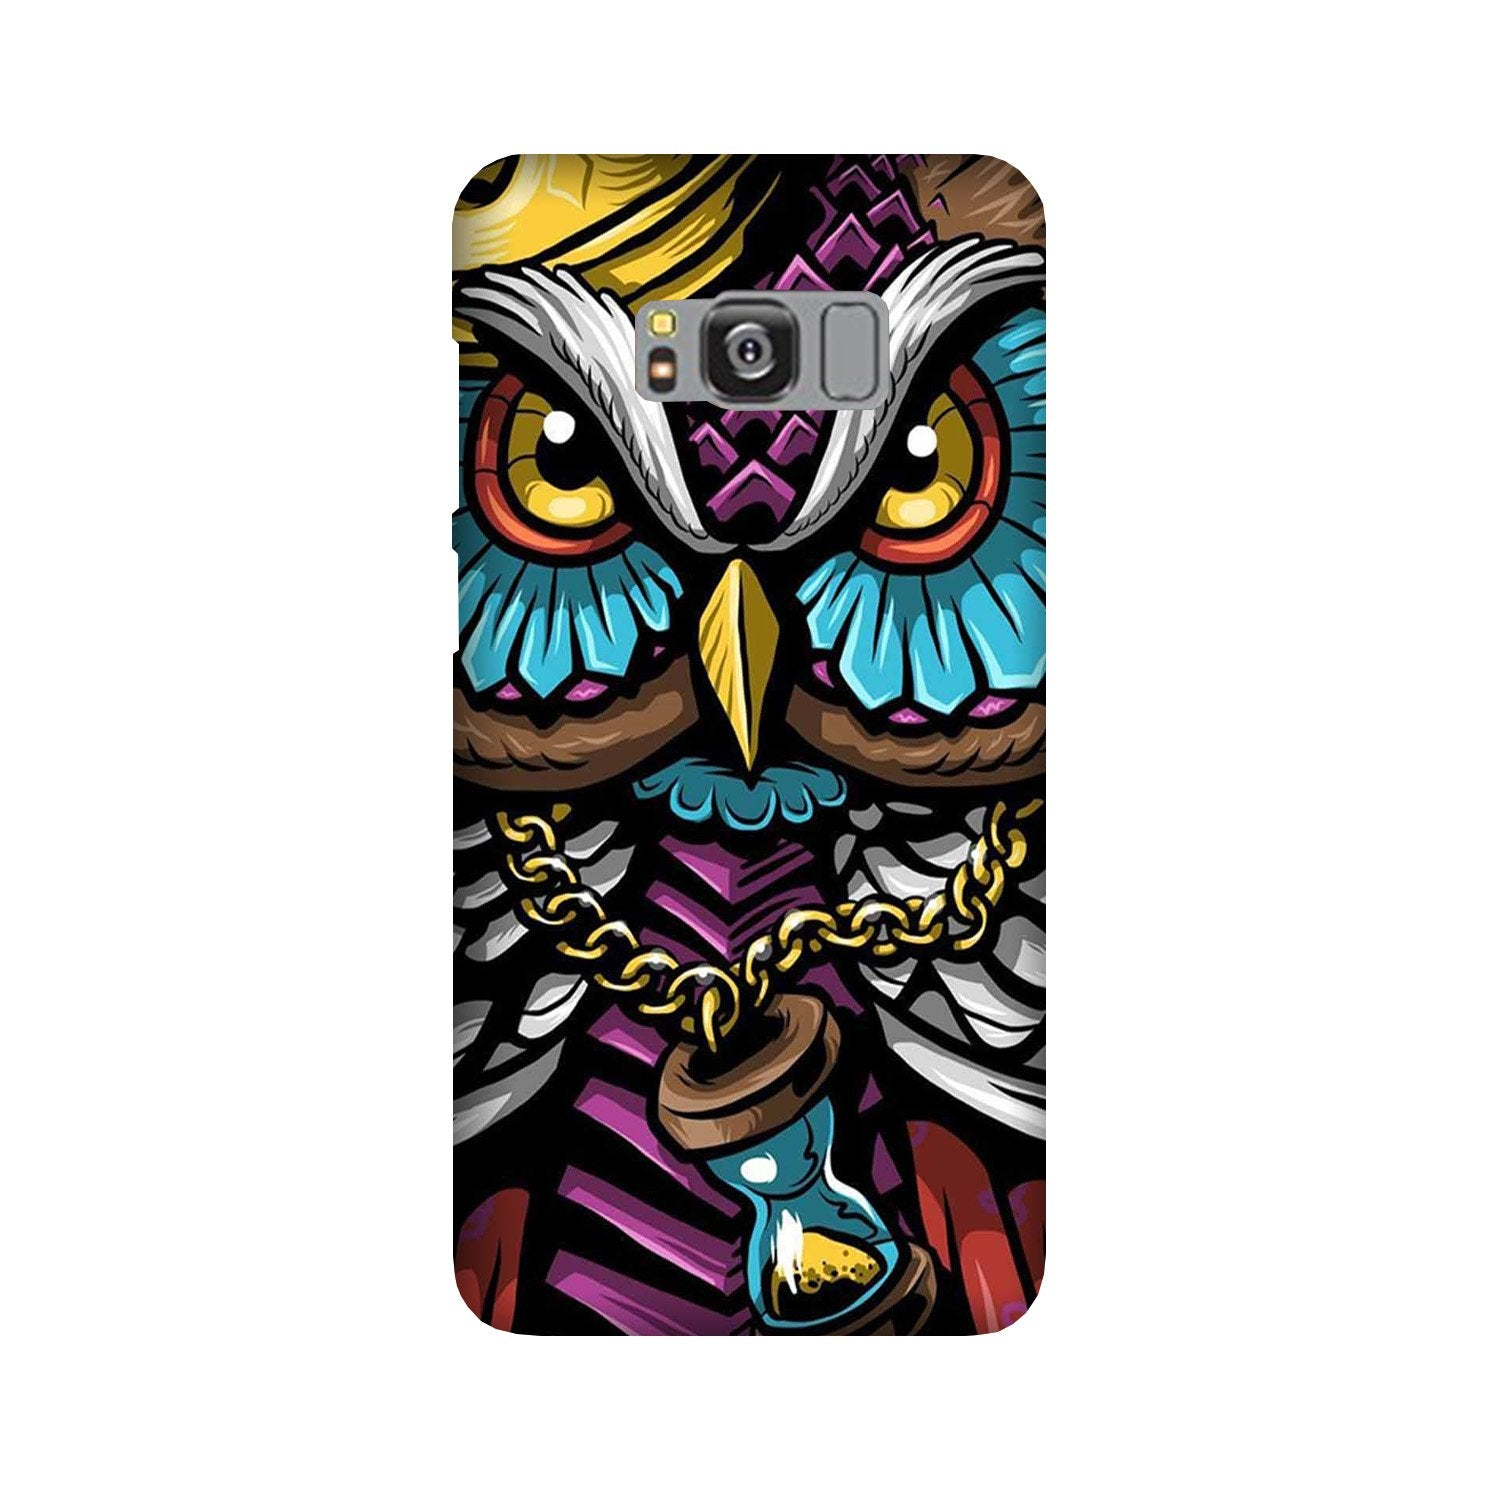 Owl Mobile Back Case for Galaxy S8 Plus  (Design - 359)